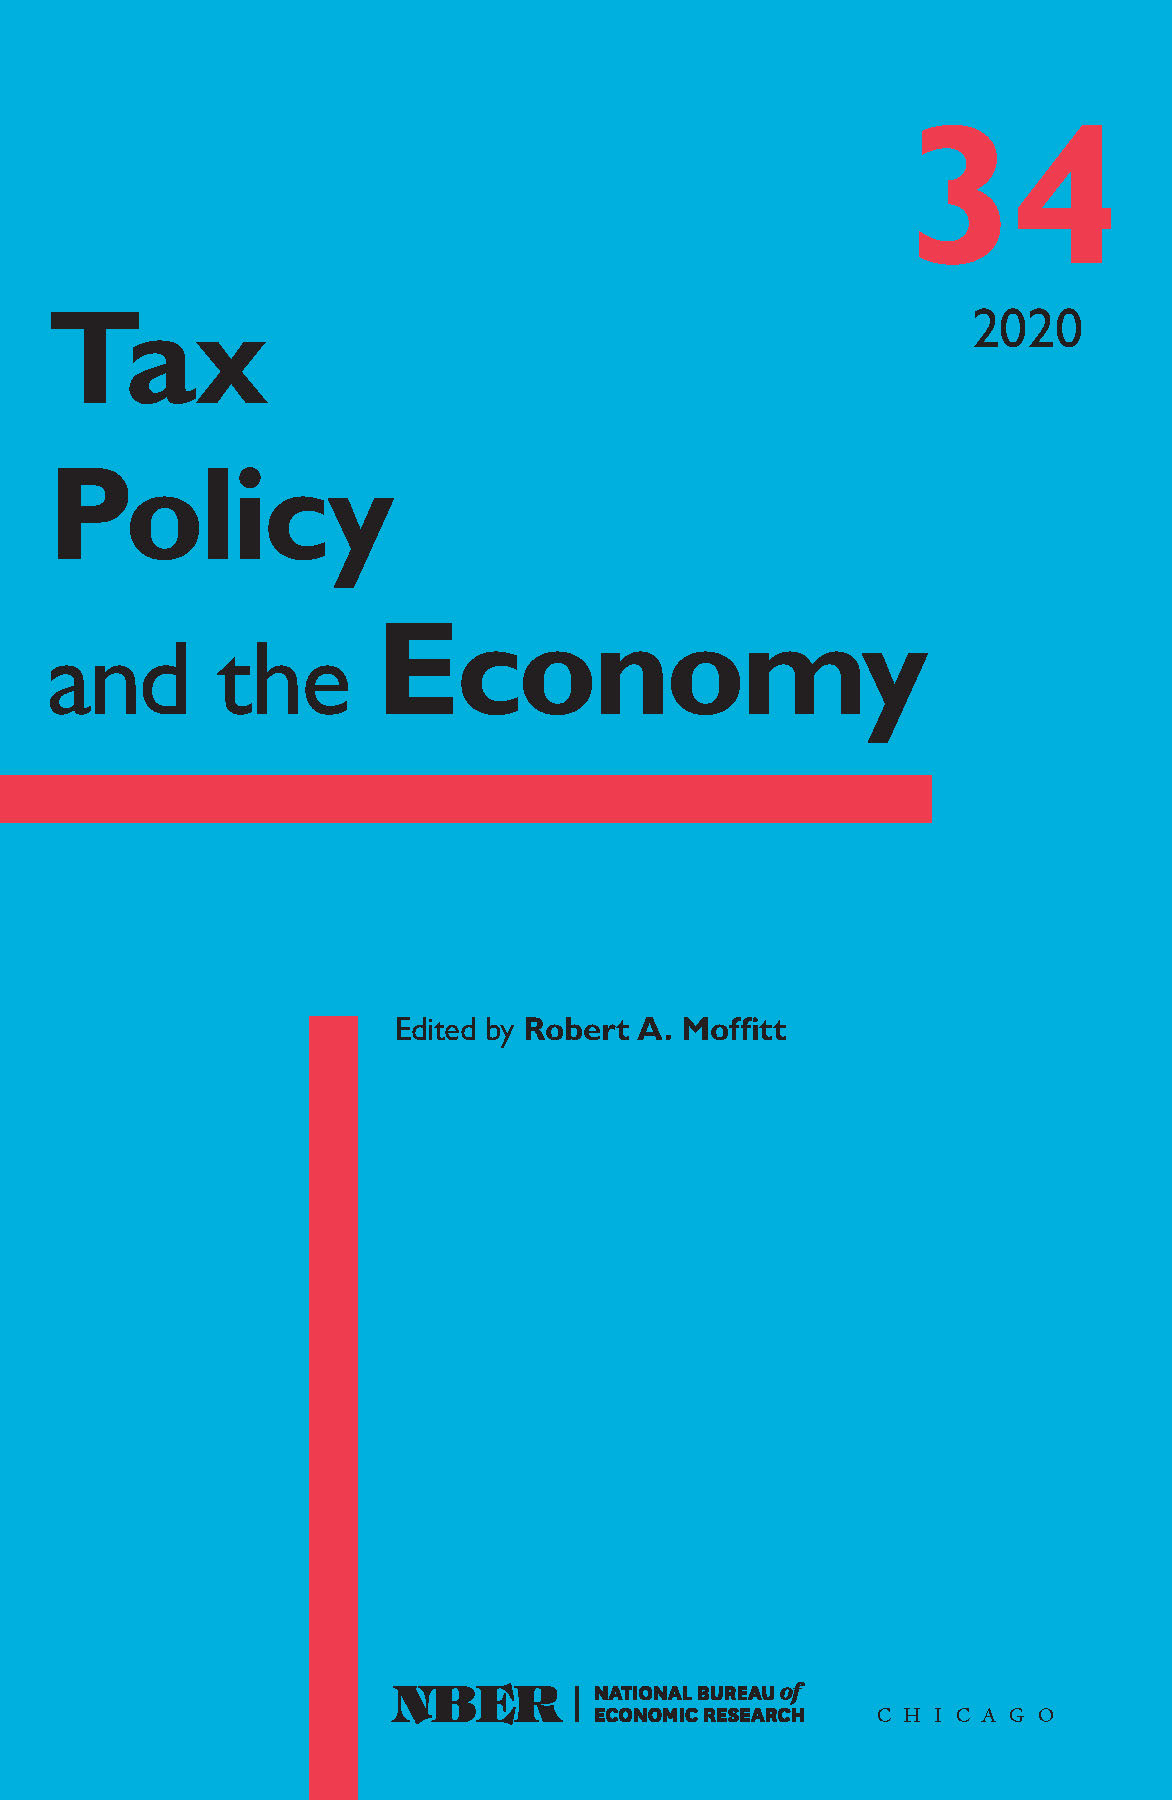 Tax Policy and the Economy, Volume 34